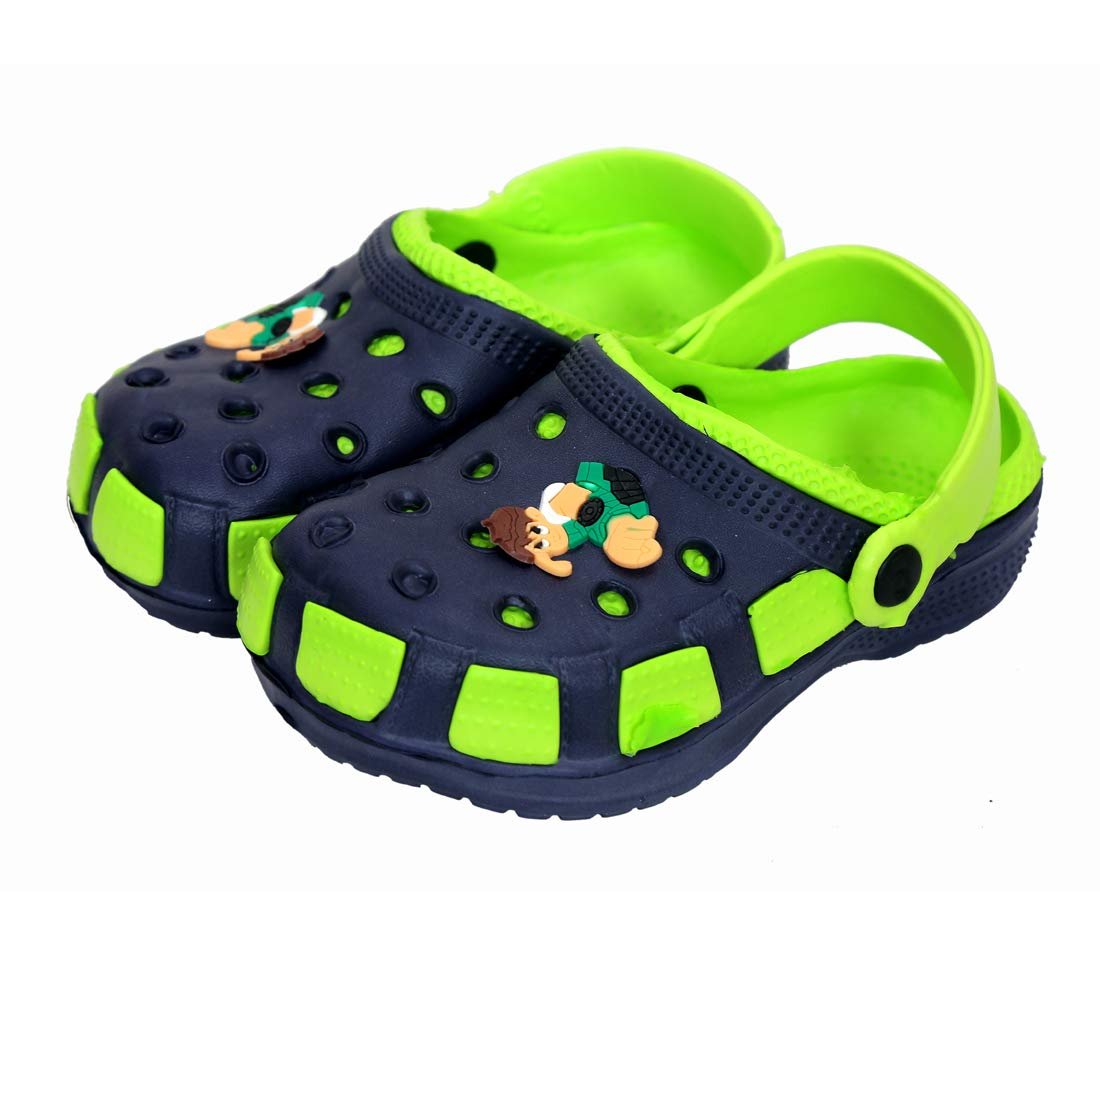 Fly Rubber Clog Boy and Girls Green (B07WP9CCZ9) Amazon Price History, Amazon Price Tracker